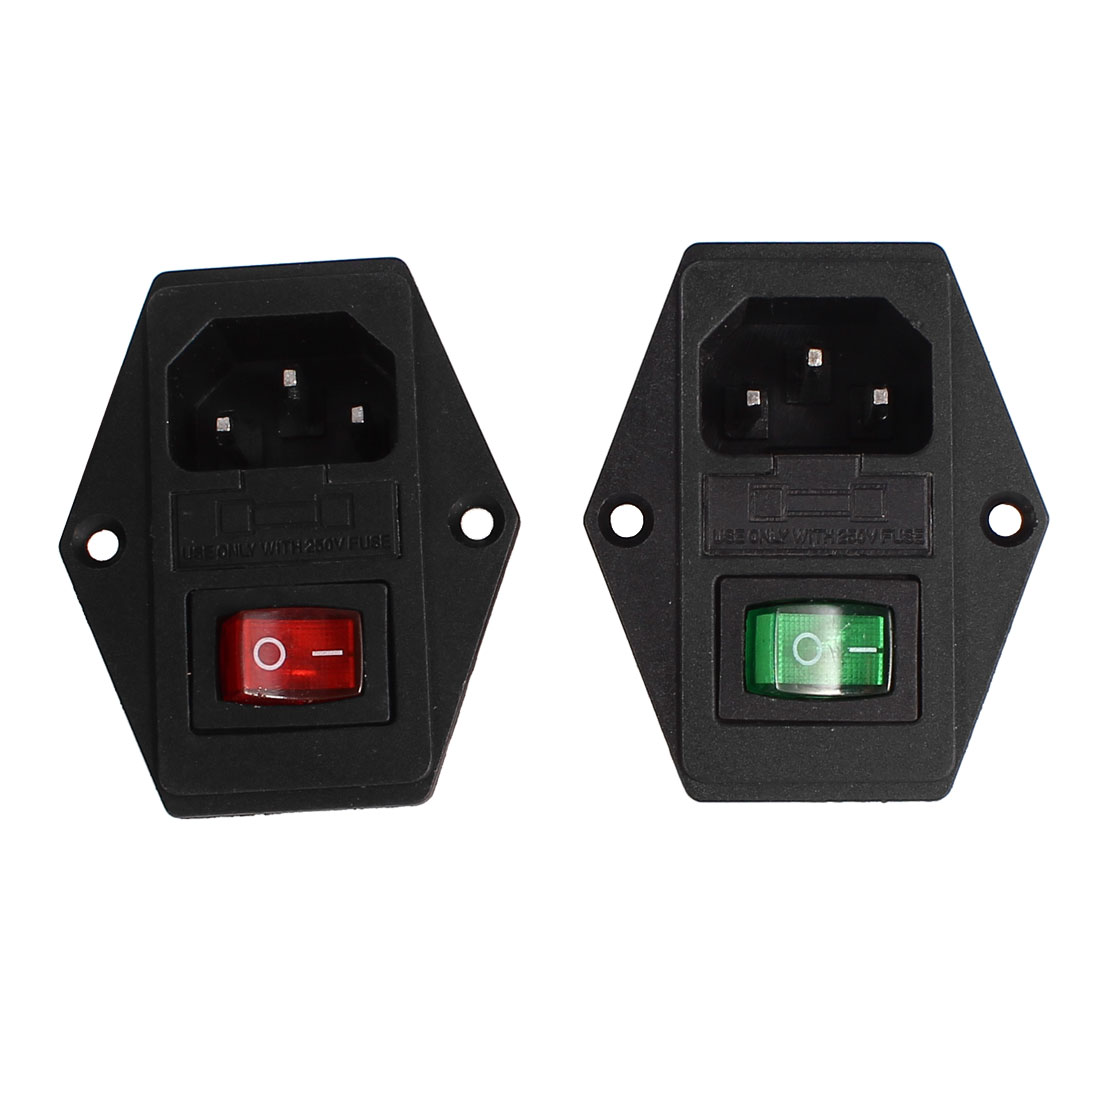 2 Pcs 3Pin SPDT Green Red Light Rocker Switch IEC320 C14 Inlet Power Socket w Fuse AC 250V 5A